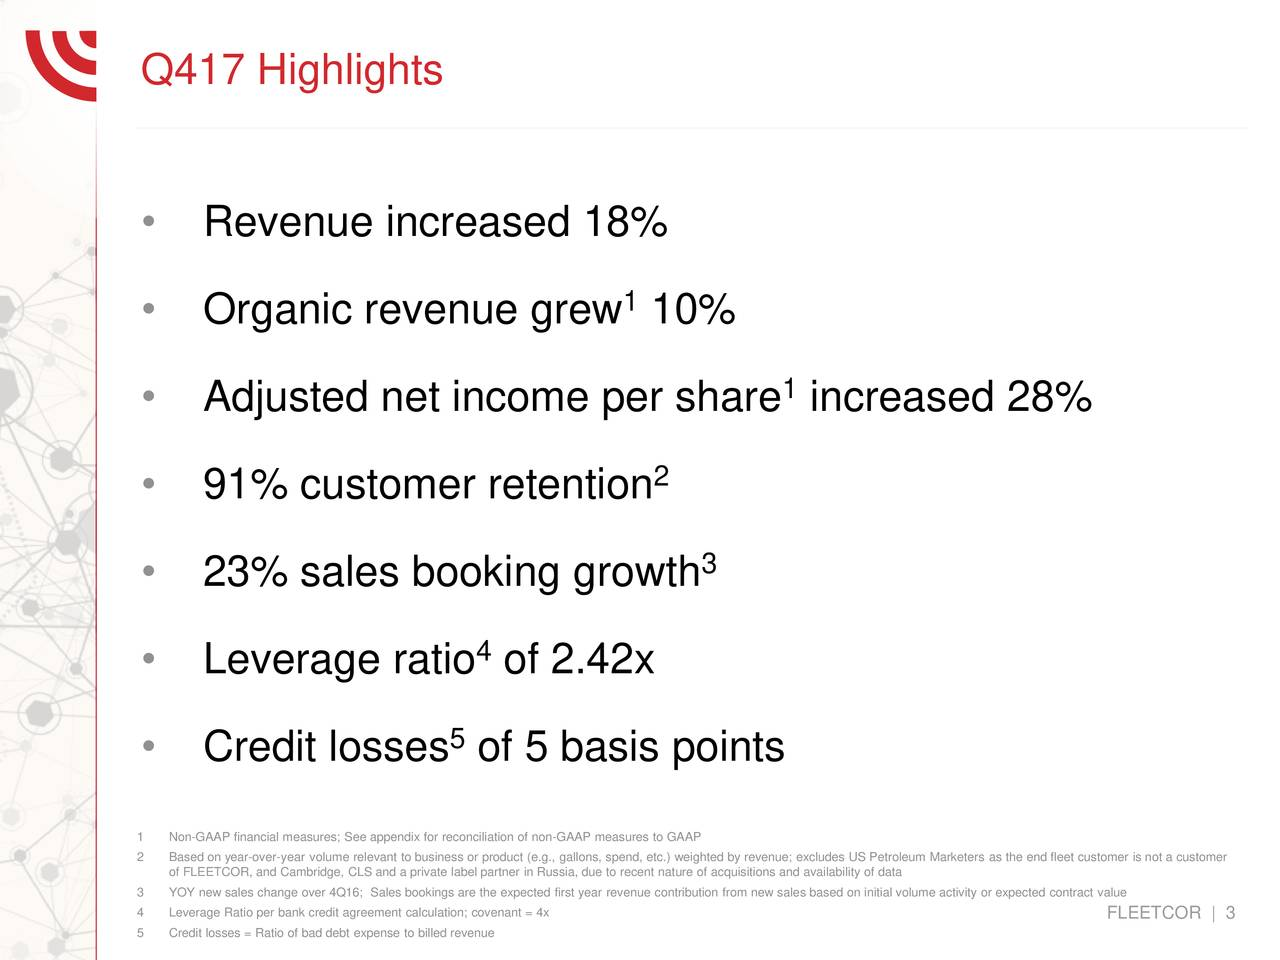 • Revenue increased 18% • Organic revenue grew 10% 1 • Adjusted net income per share increased 28% 1 • 91% customer retention 2 • 23% sales booking growth 3 • Leverage ratio of 2.42x • Credit losses of 5 basis points 1 Non-GAAP financial measures; See appendix for reconciliation of non-GAAP measures to GAAP 2 of FLEETCOR, and Cambridge, CLS and a private label partner in Russia, due to recent nature of acquisitions and availability of dataum Marketers as the end fleet customer is not a customer 3 YOY new sales change over 4Q16; Sales bookings are the expected first year revenue contribution from new sales based on initial volume activity or expected contract value 5 Credit losses = Ratio of bad debt expense to billed revenueant = 4x FLEETCOR | 3